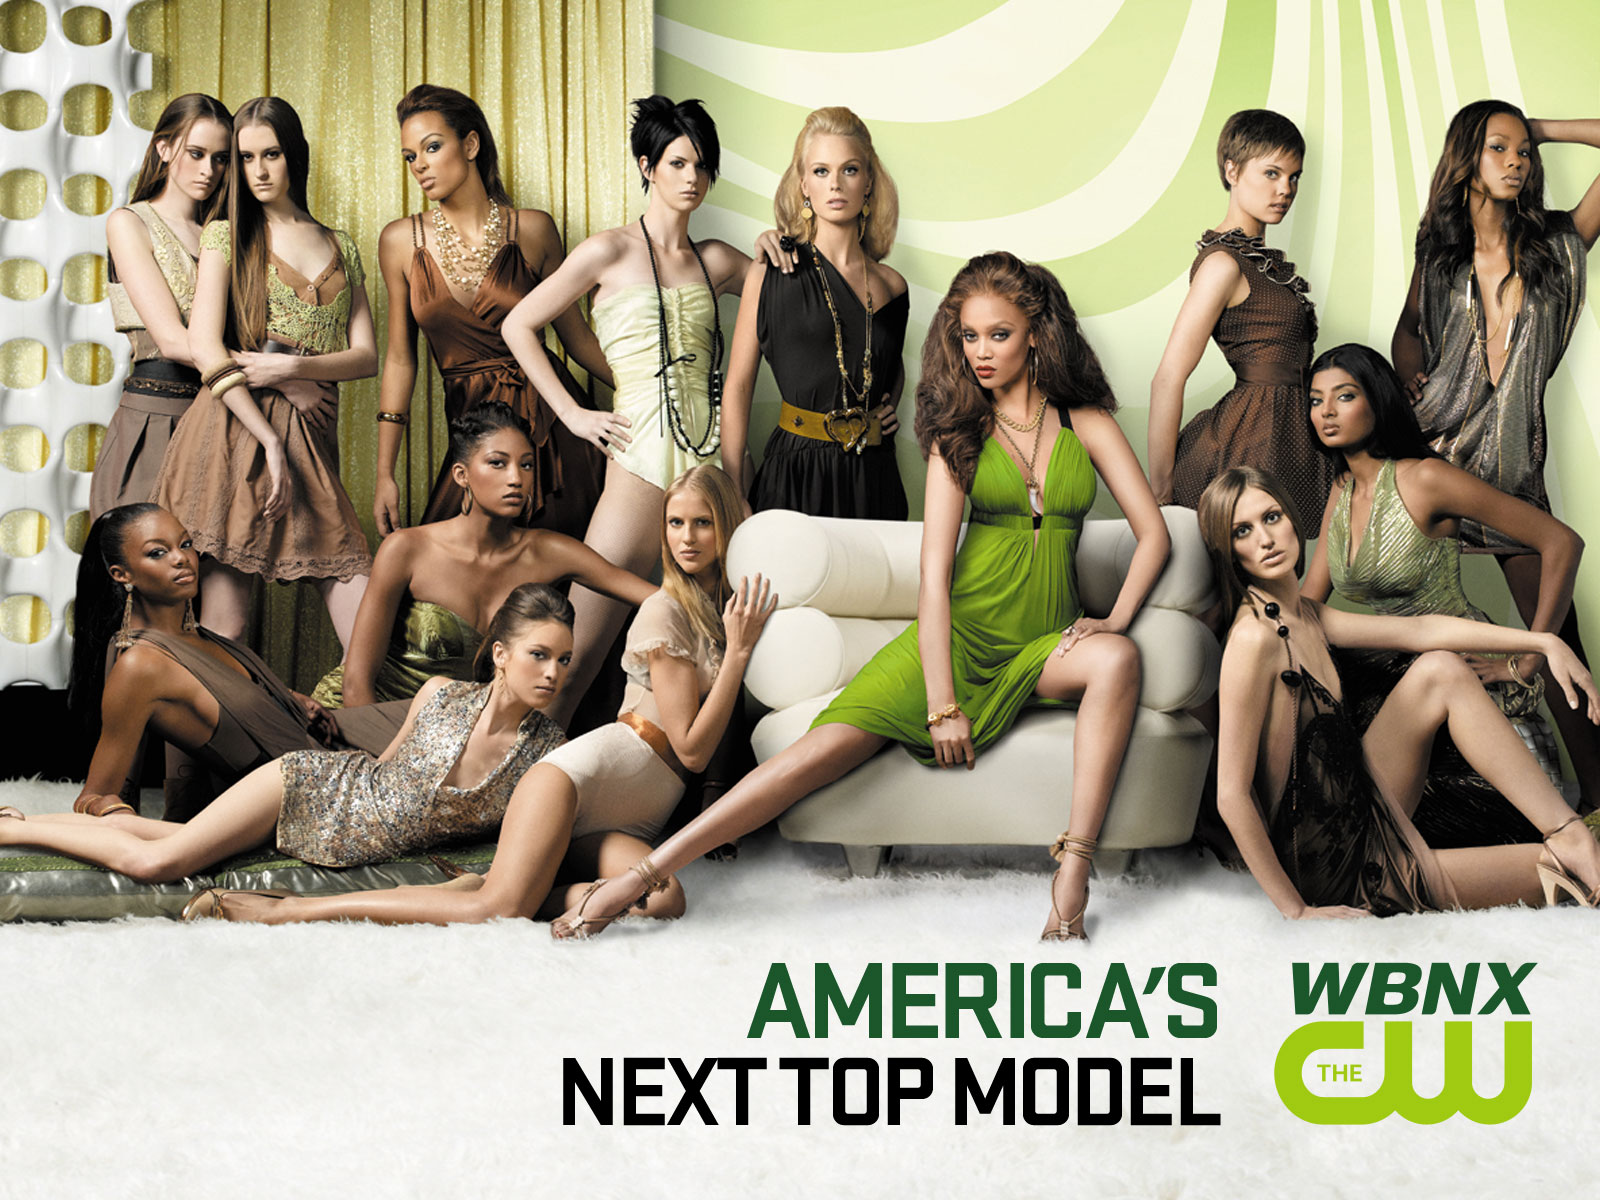 ANTM - America's Next Top Model Wallpaper (35803) - Fanpop